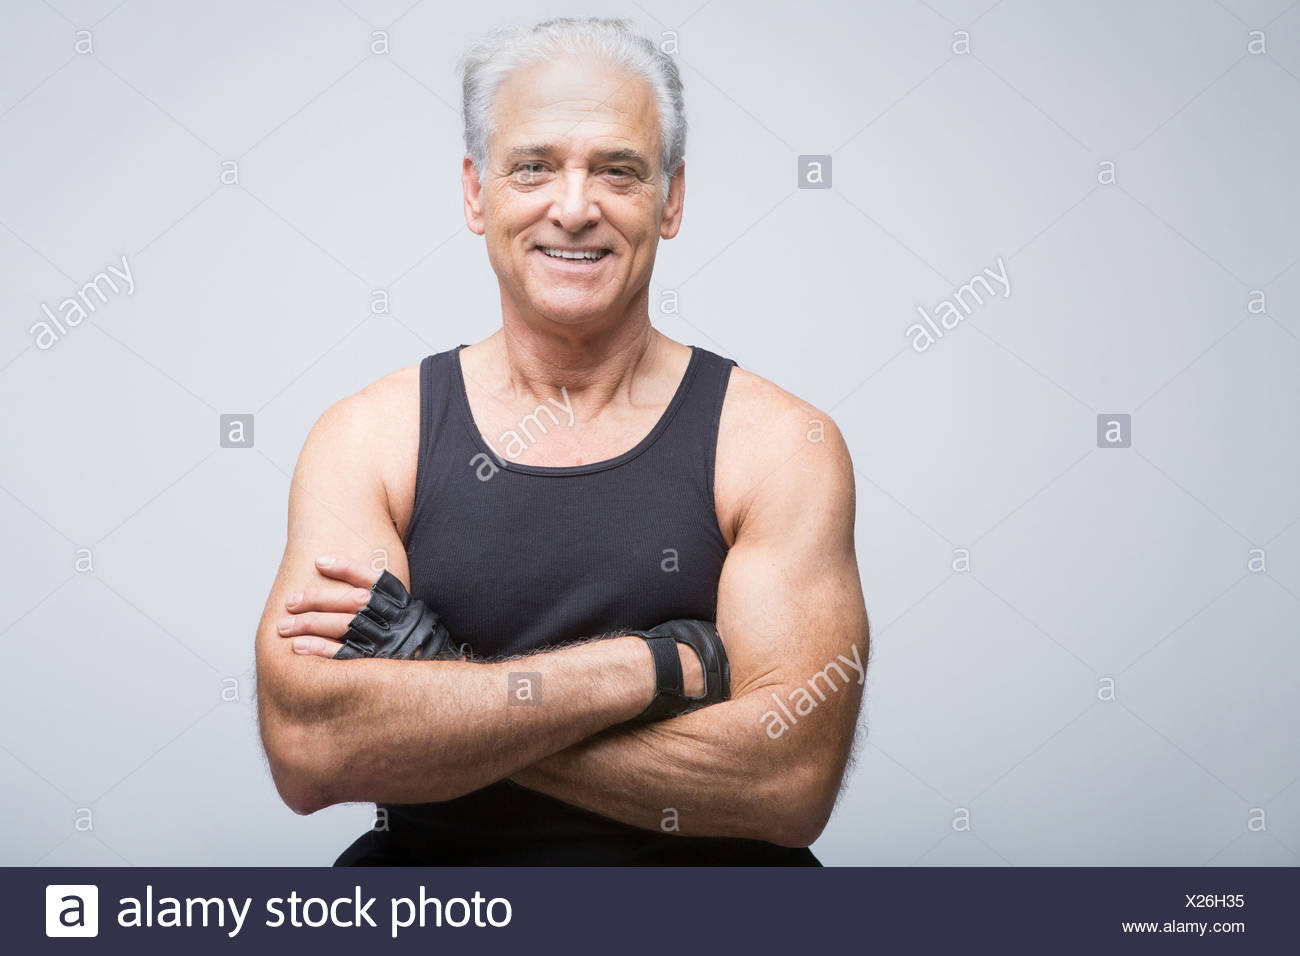 Senior man in sports clothing with arms crossed, portrait - Stock Image